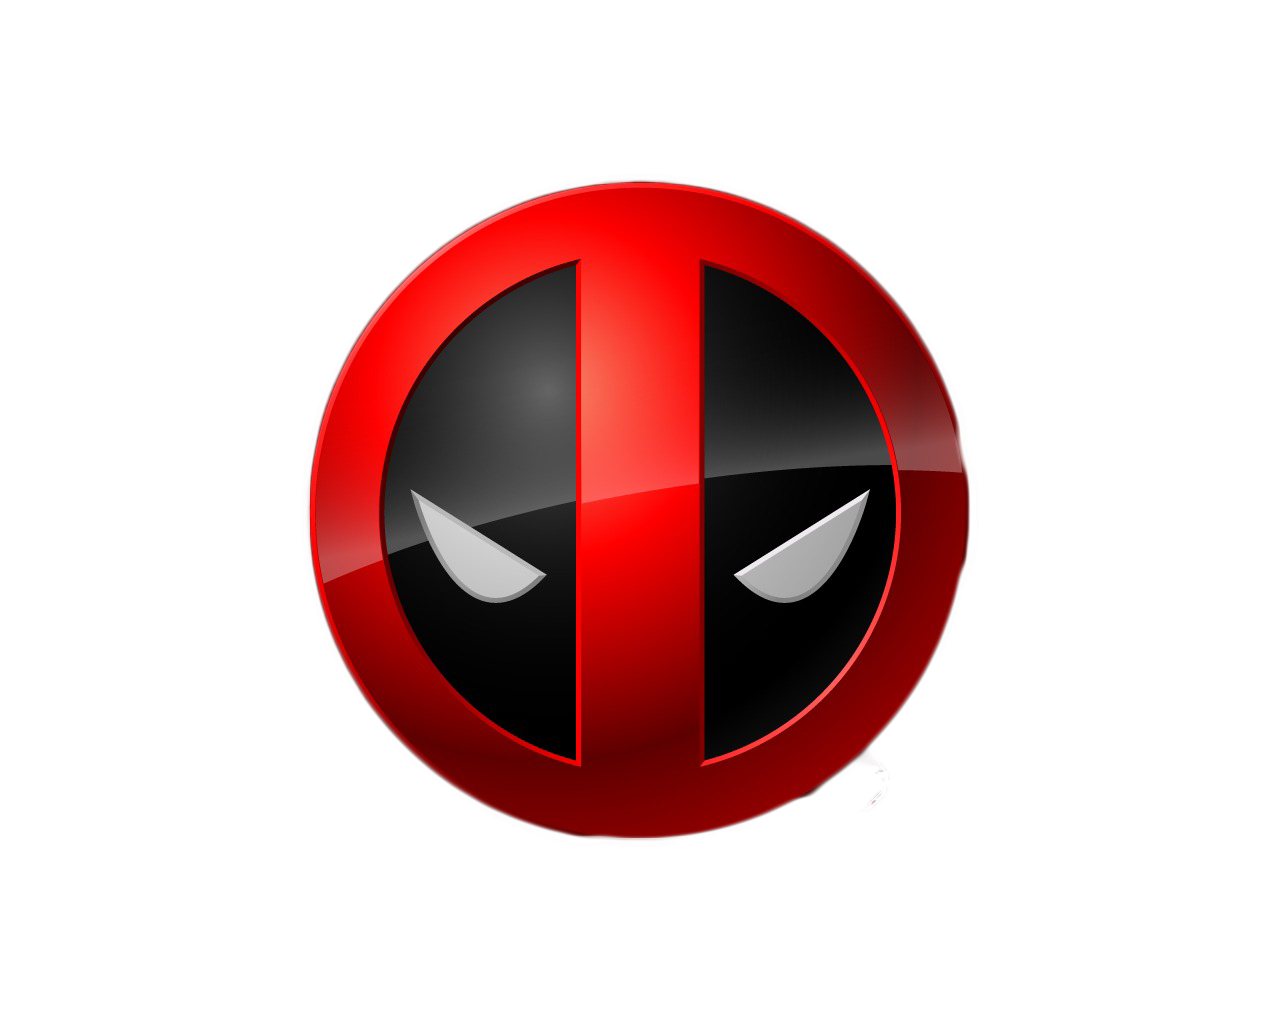 Deadpool logo png. Symbol icon downolad by